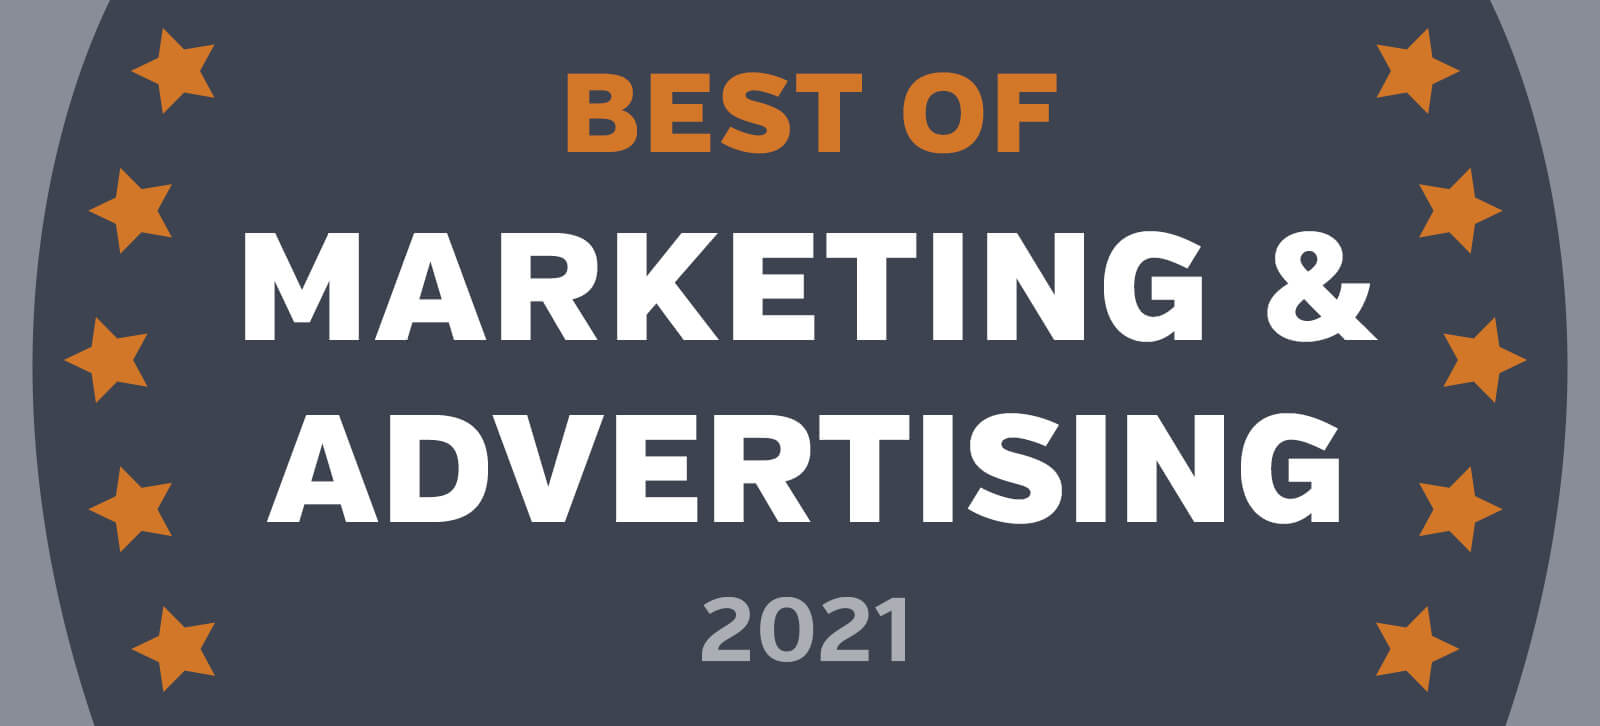 UpCity Announces the Best of Marketing & Advertising Award Winners